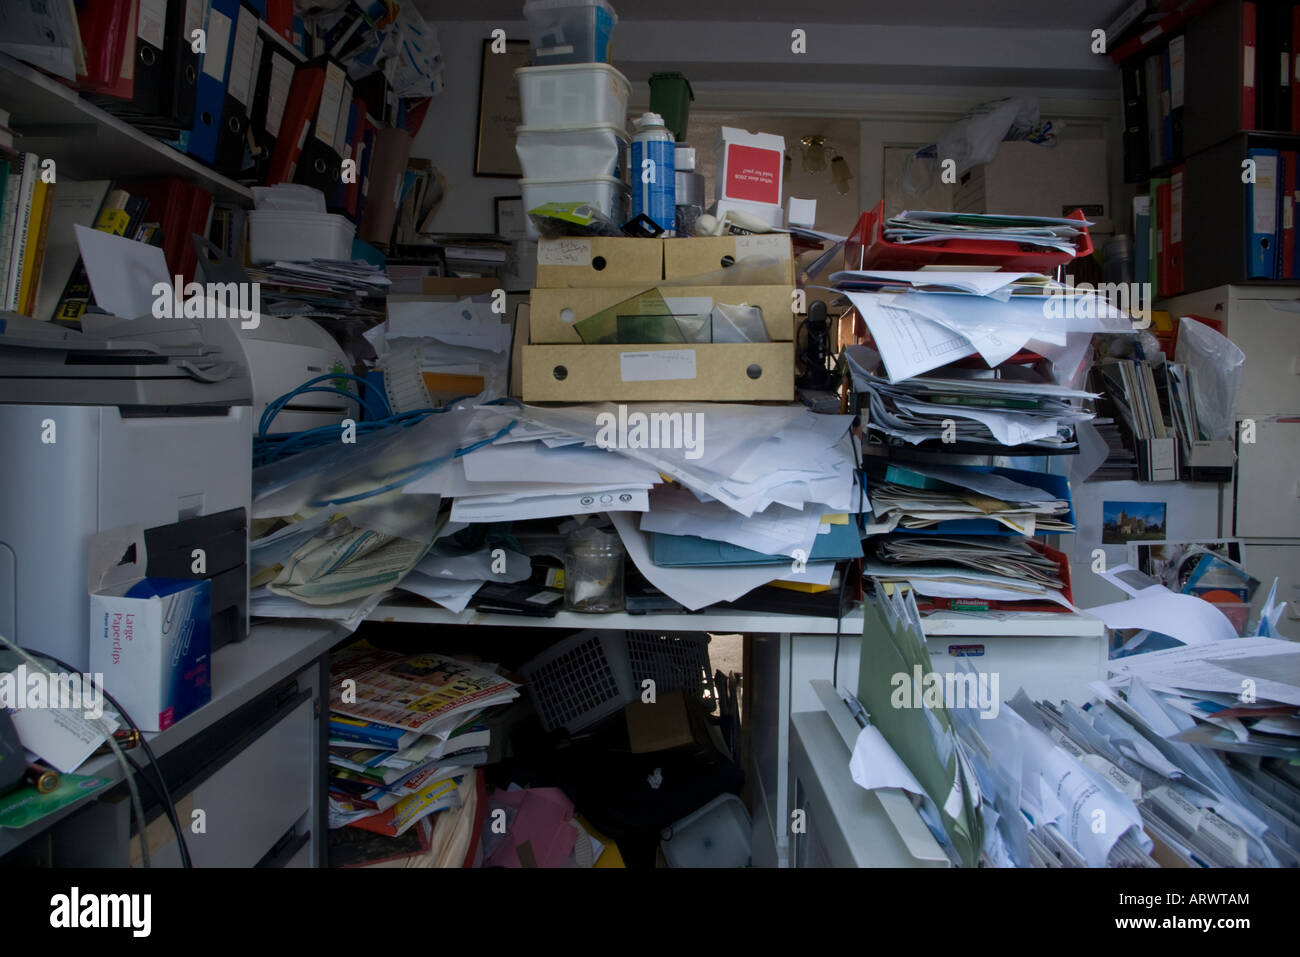 An untidy office stock photo royalty free image 16136635 alamy - Office photo ...